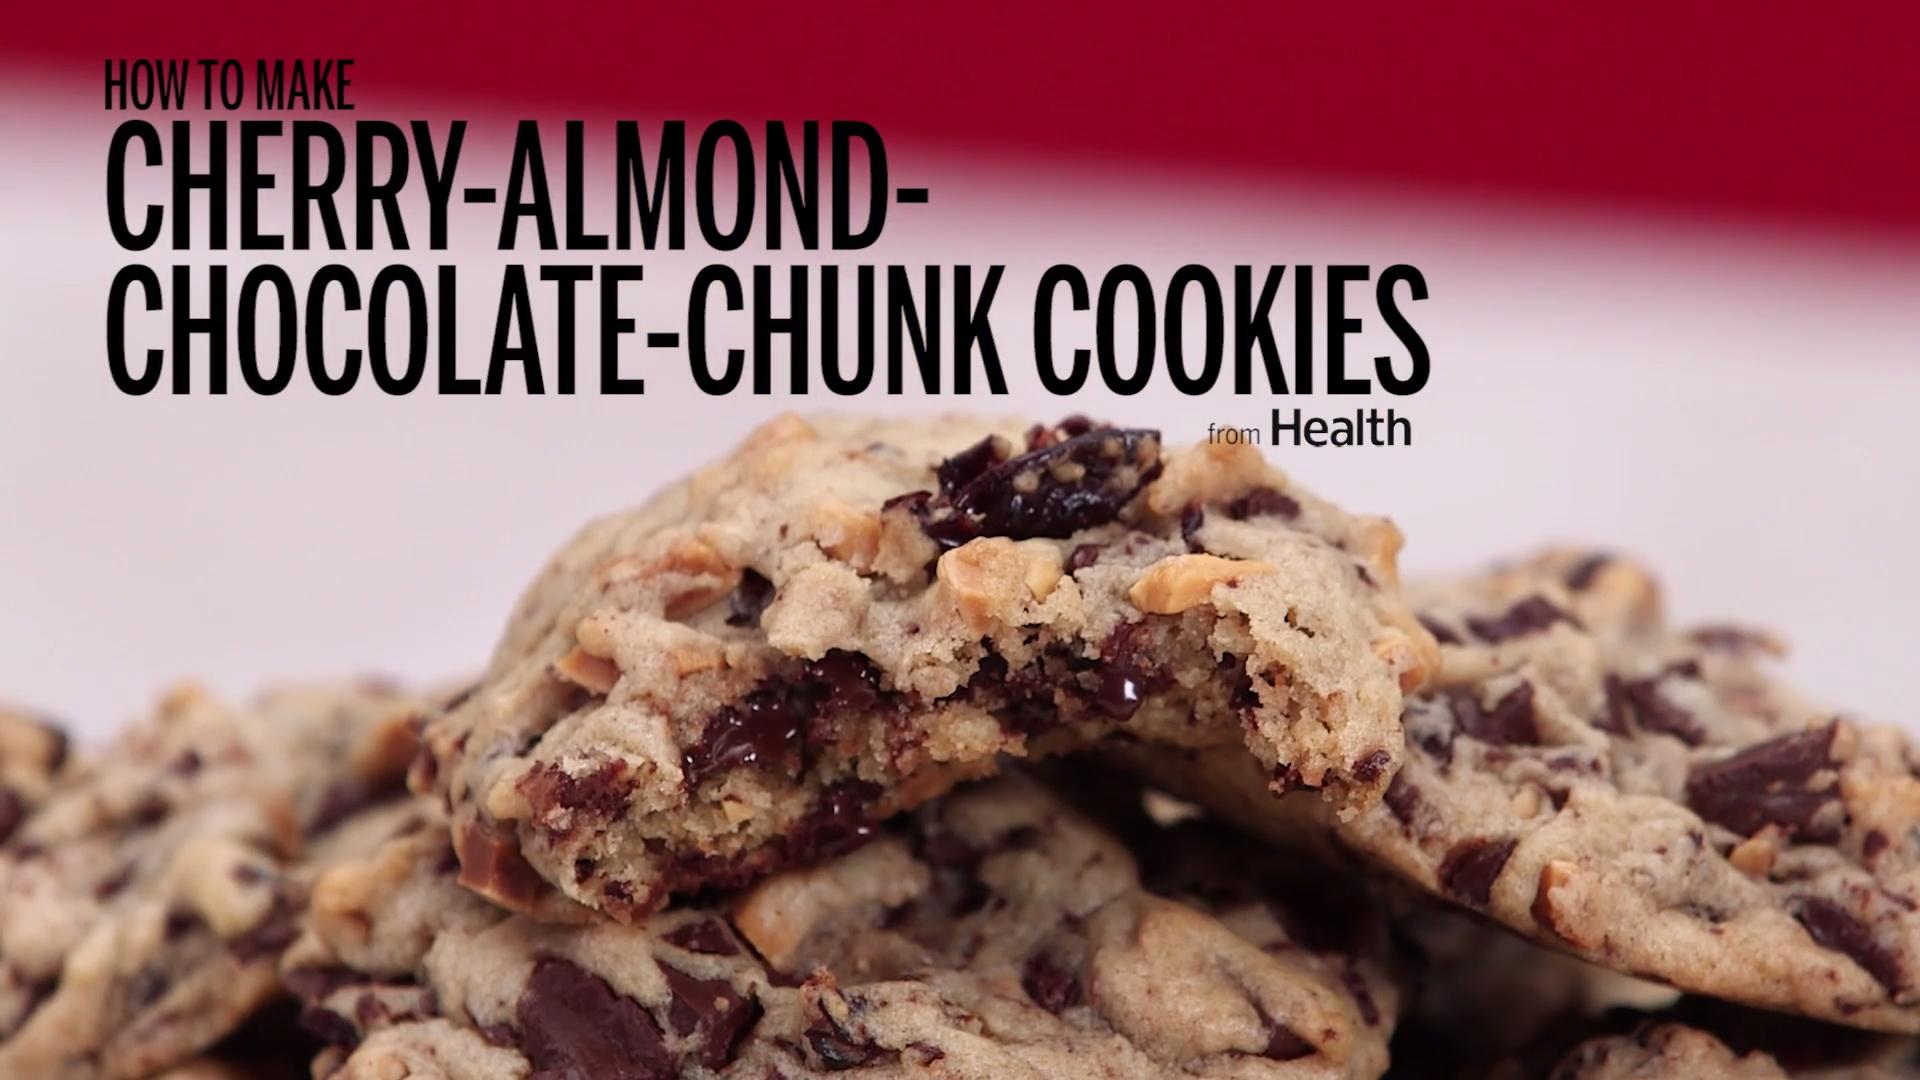 Cherry-Almond-Chocolate Chunk Cookies